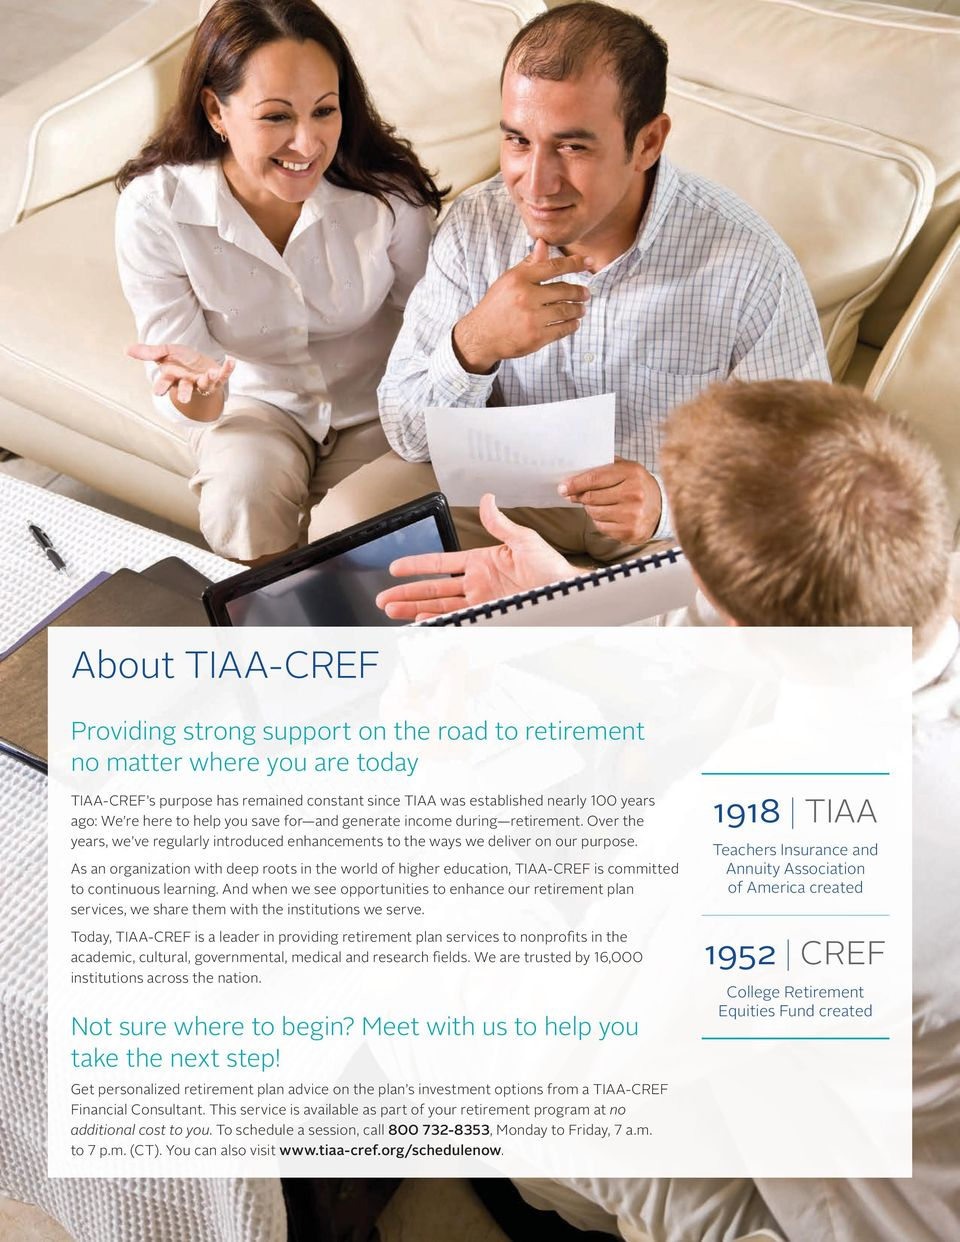 As an organization with deep roots in the world of higher education, TIAA-CREF is committed to continuous learning.